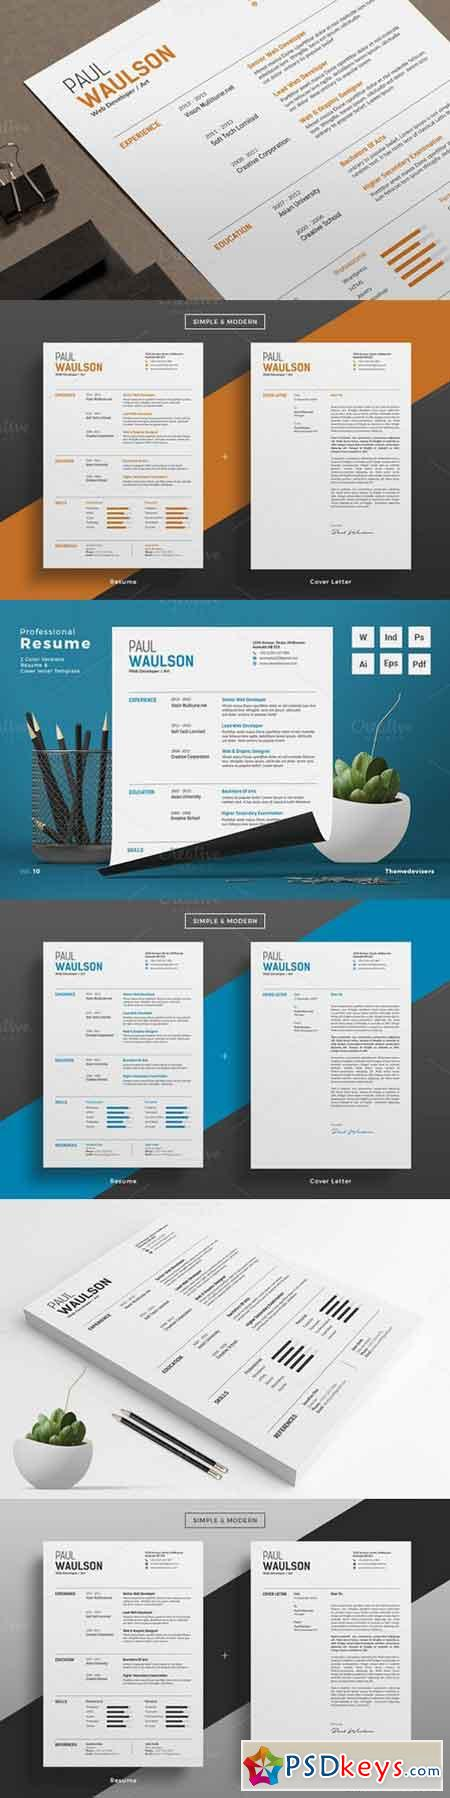 professional resume cv word 891035 free download photoshop